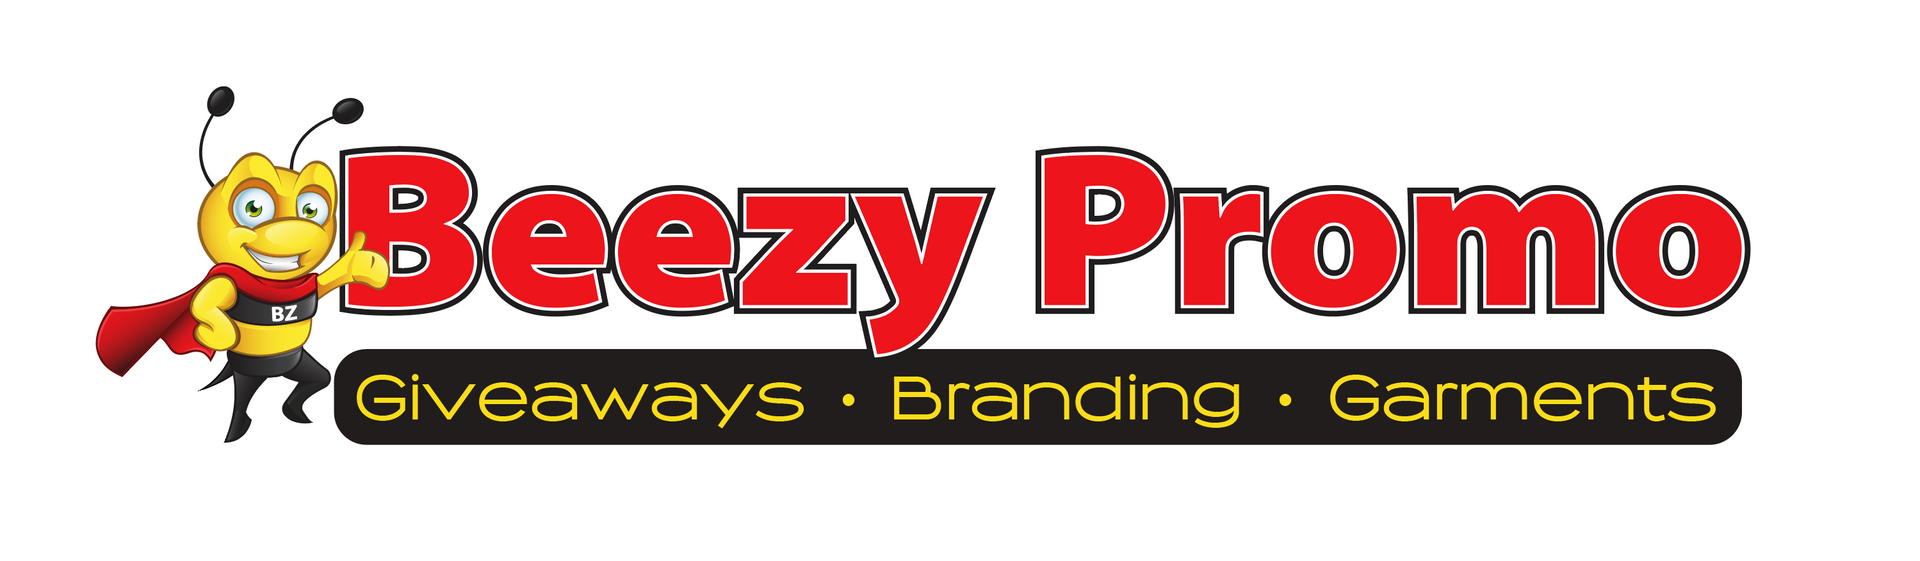 Custom logo of a bee for Beezy Promo